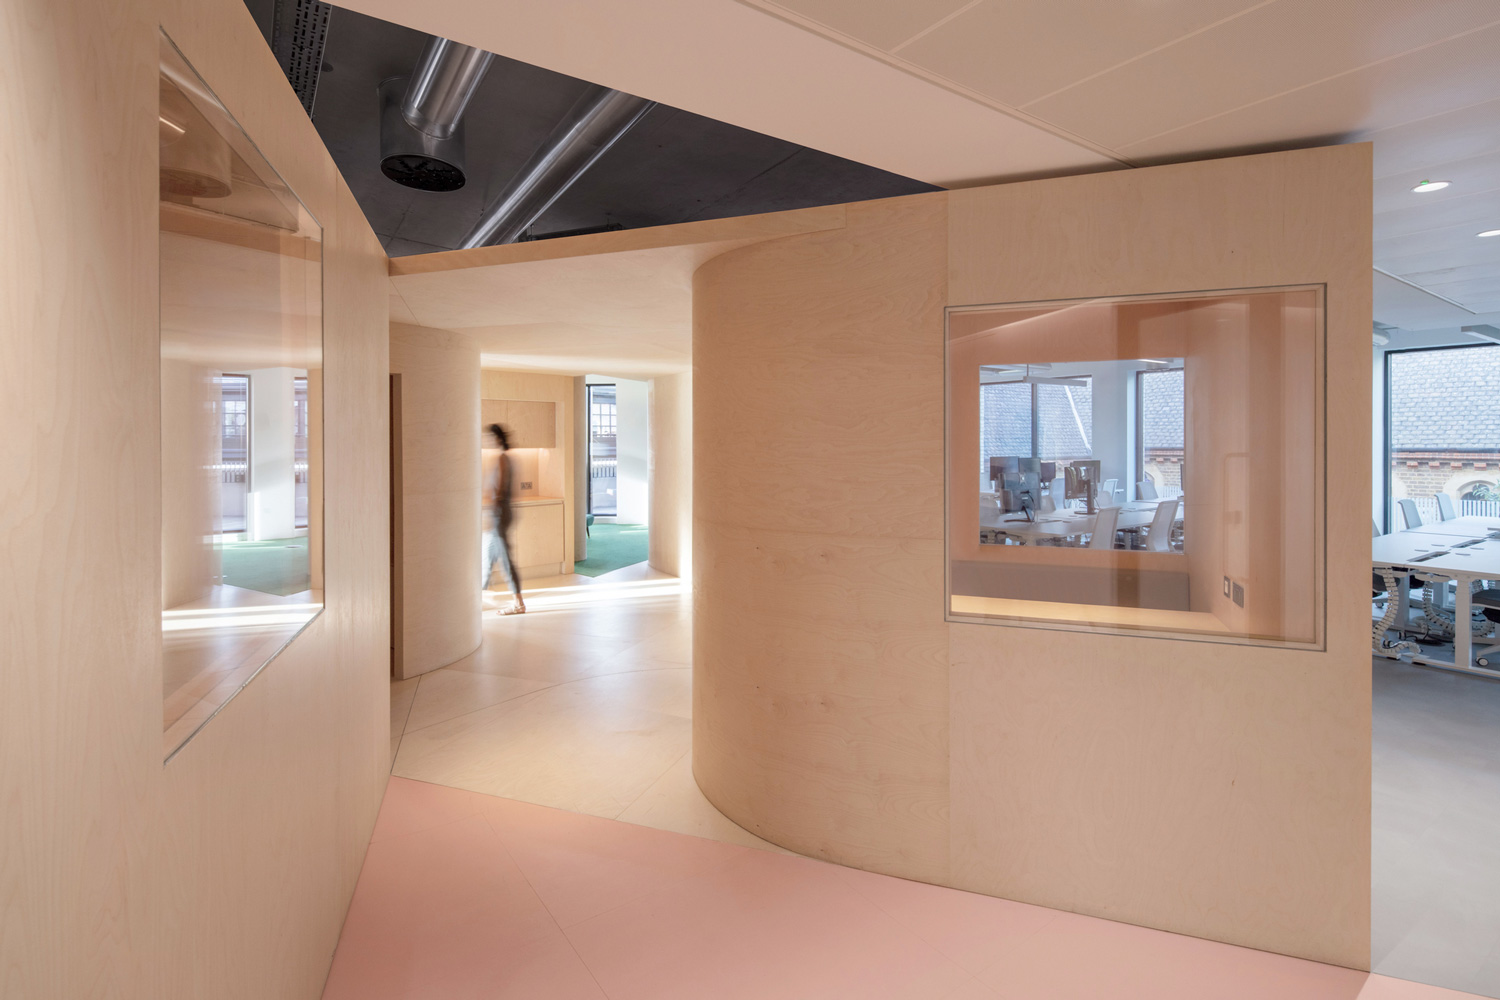 ConsenSys Offices in London by Neiheiser Argyros | Yellowtrace